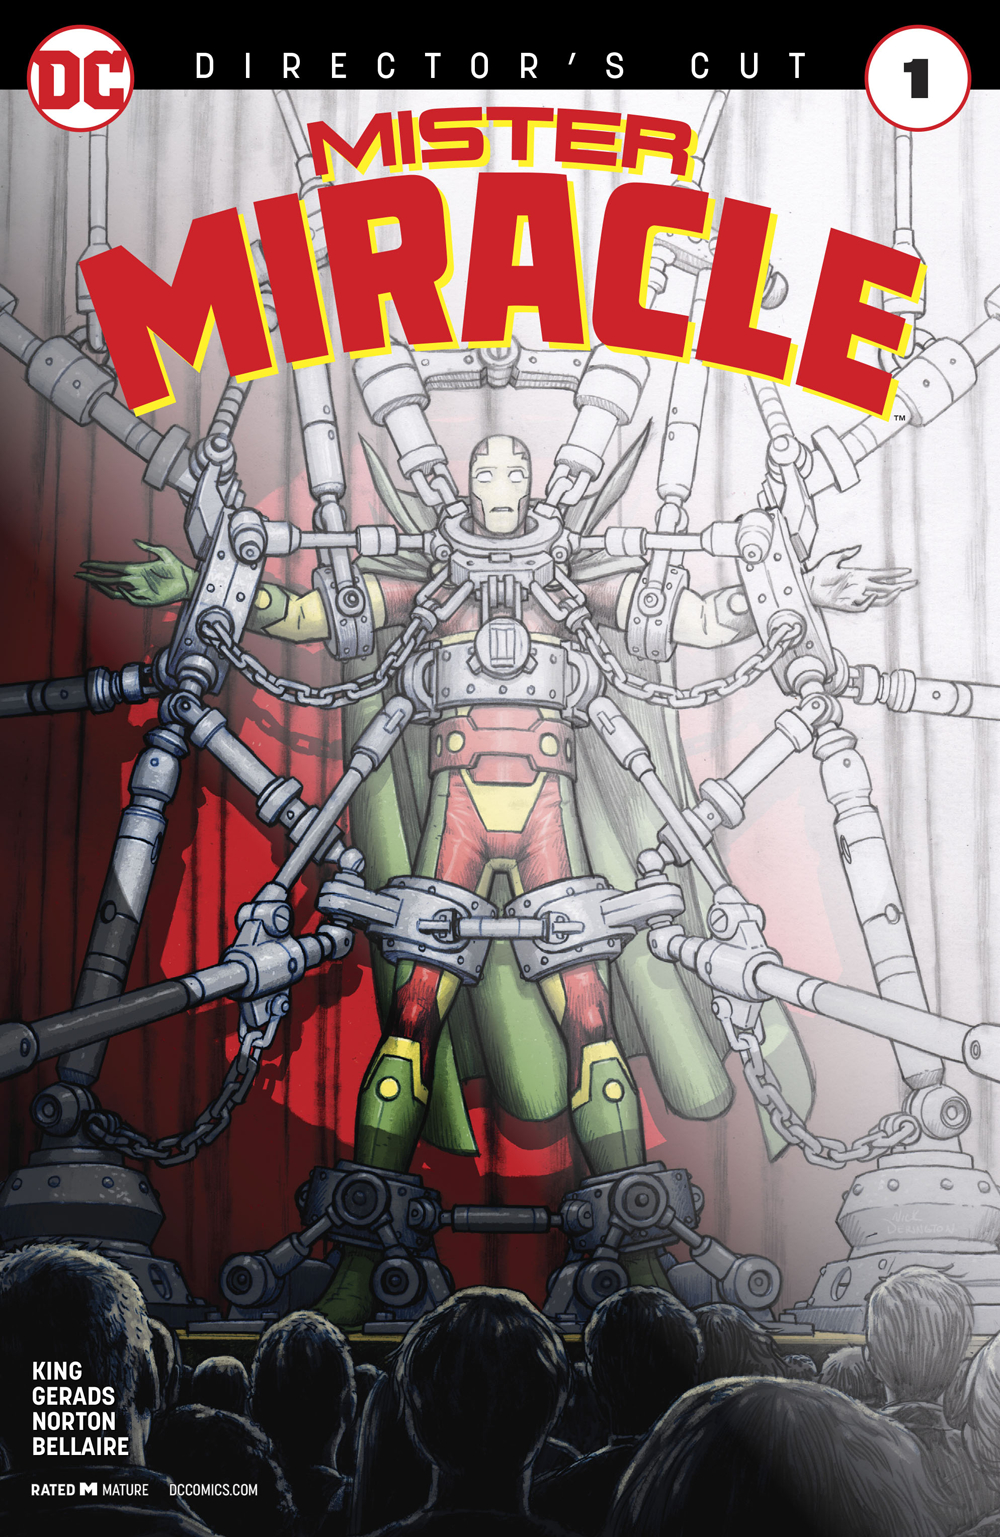 MISTER MIRACLE DIRECTORS CUT #1 (MR)